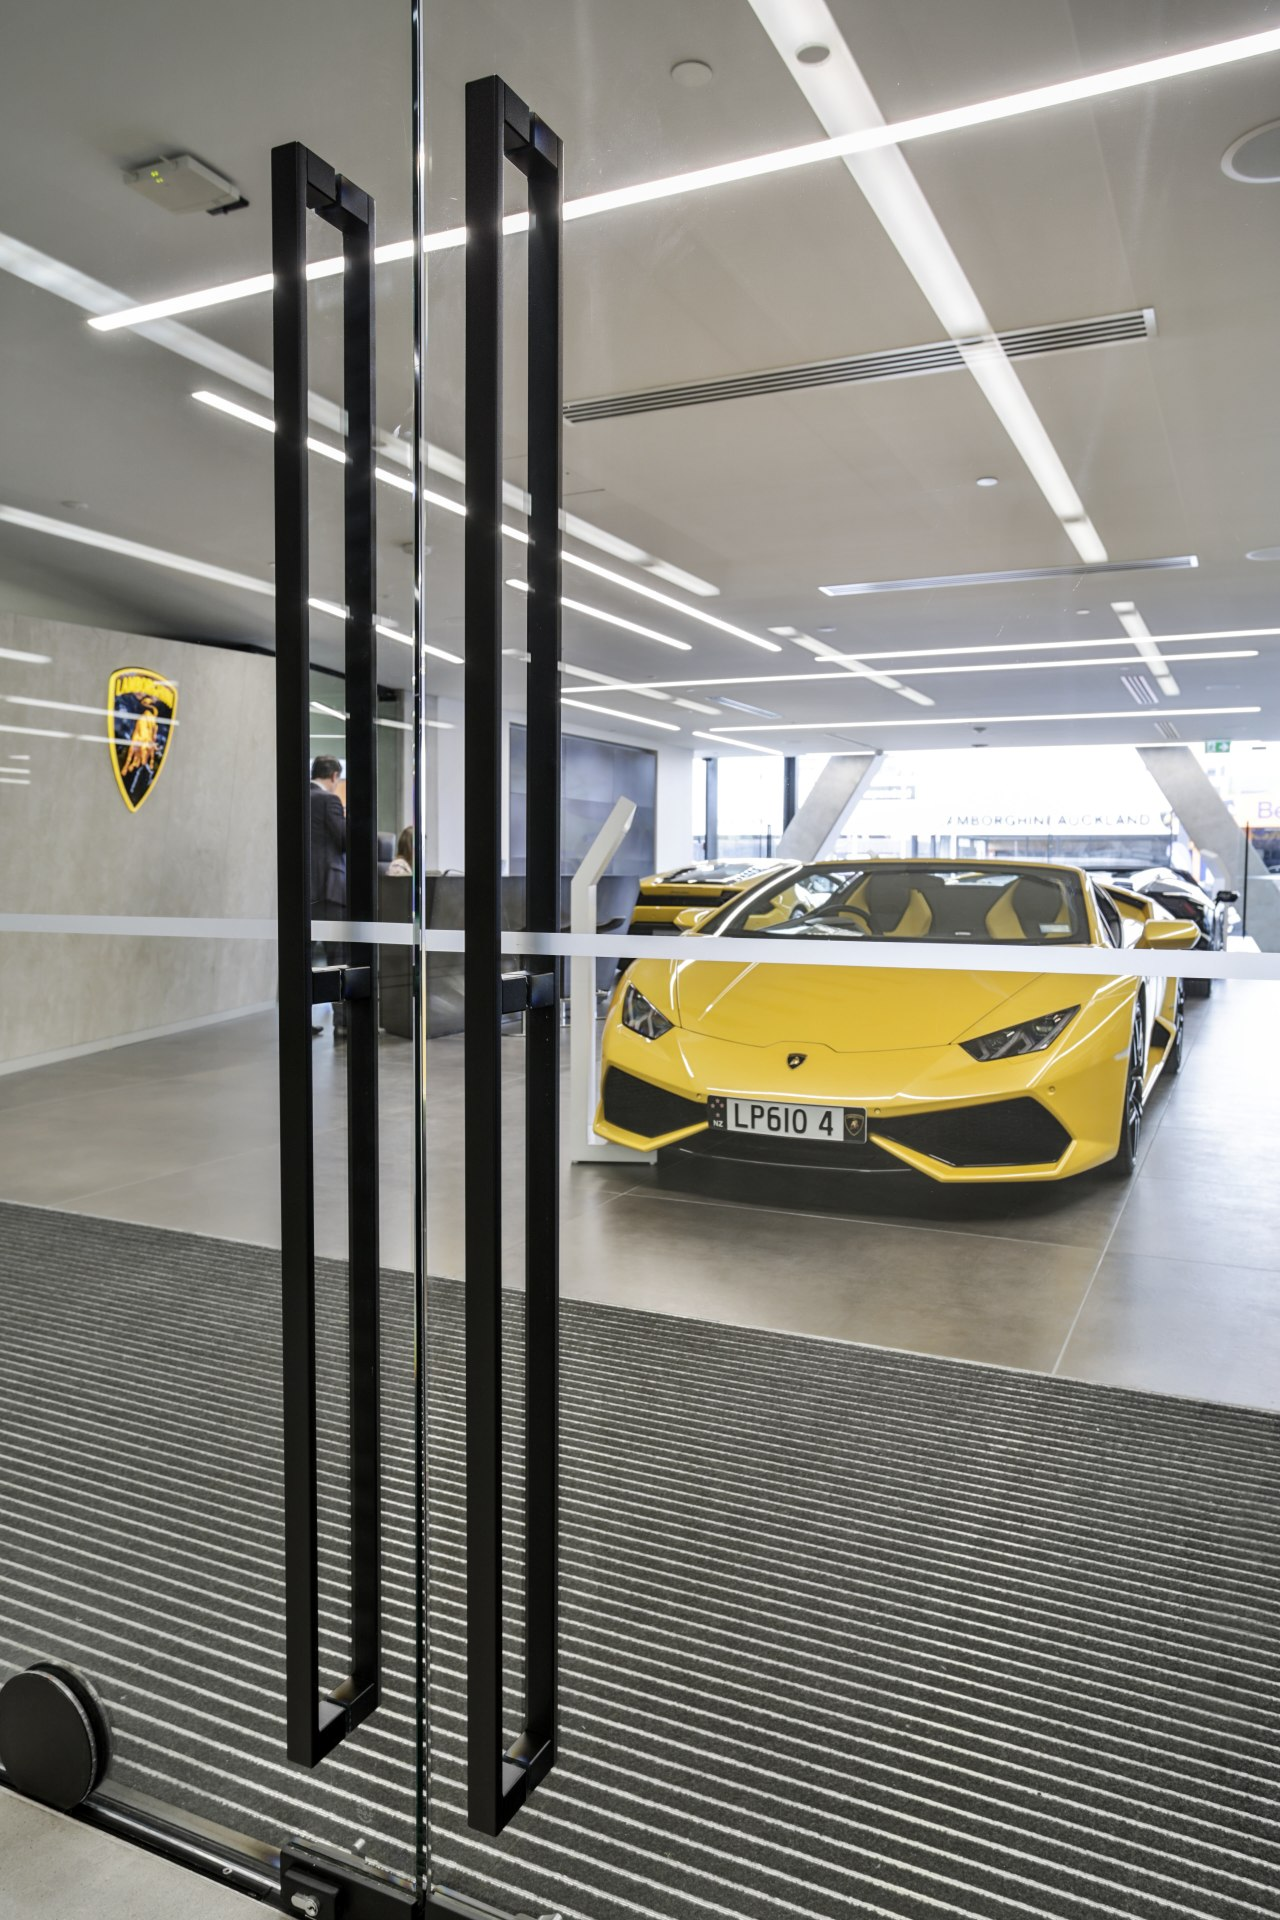 Whats in a touch? Well, quite a lot automotive design, car, car dealership, luxury vehicle, motor vehicle, sports car, vehicle, yellow, gray